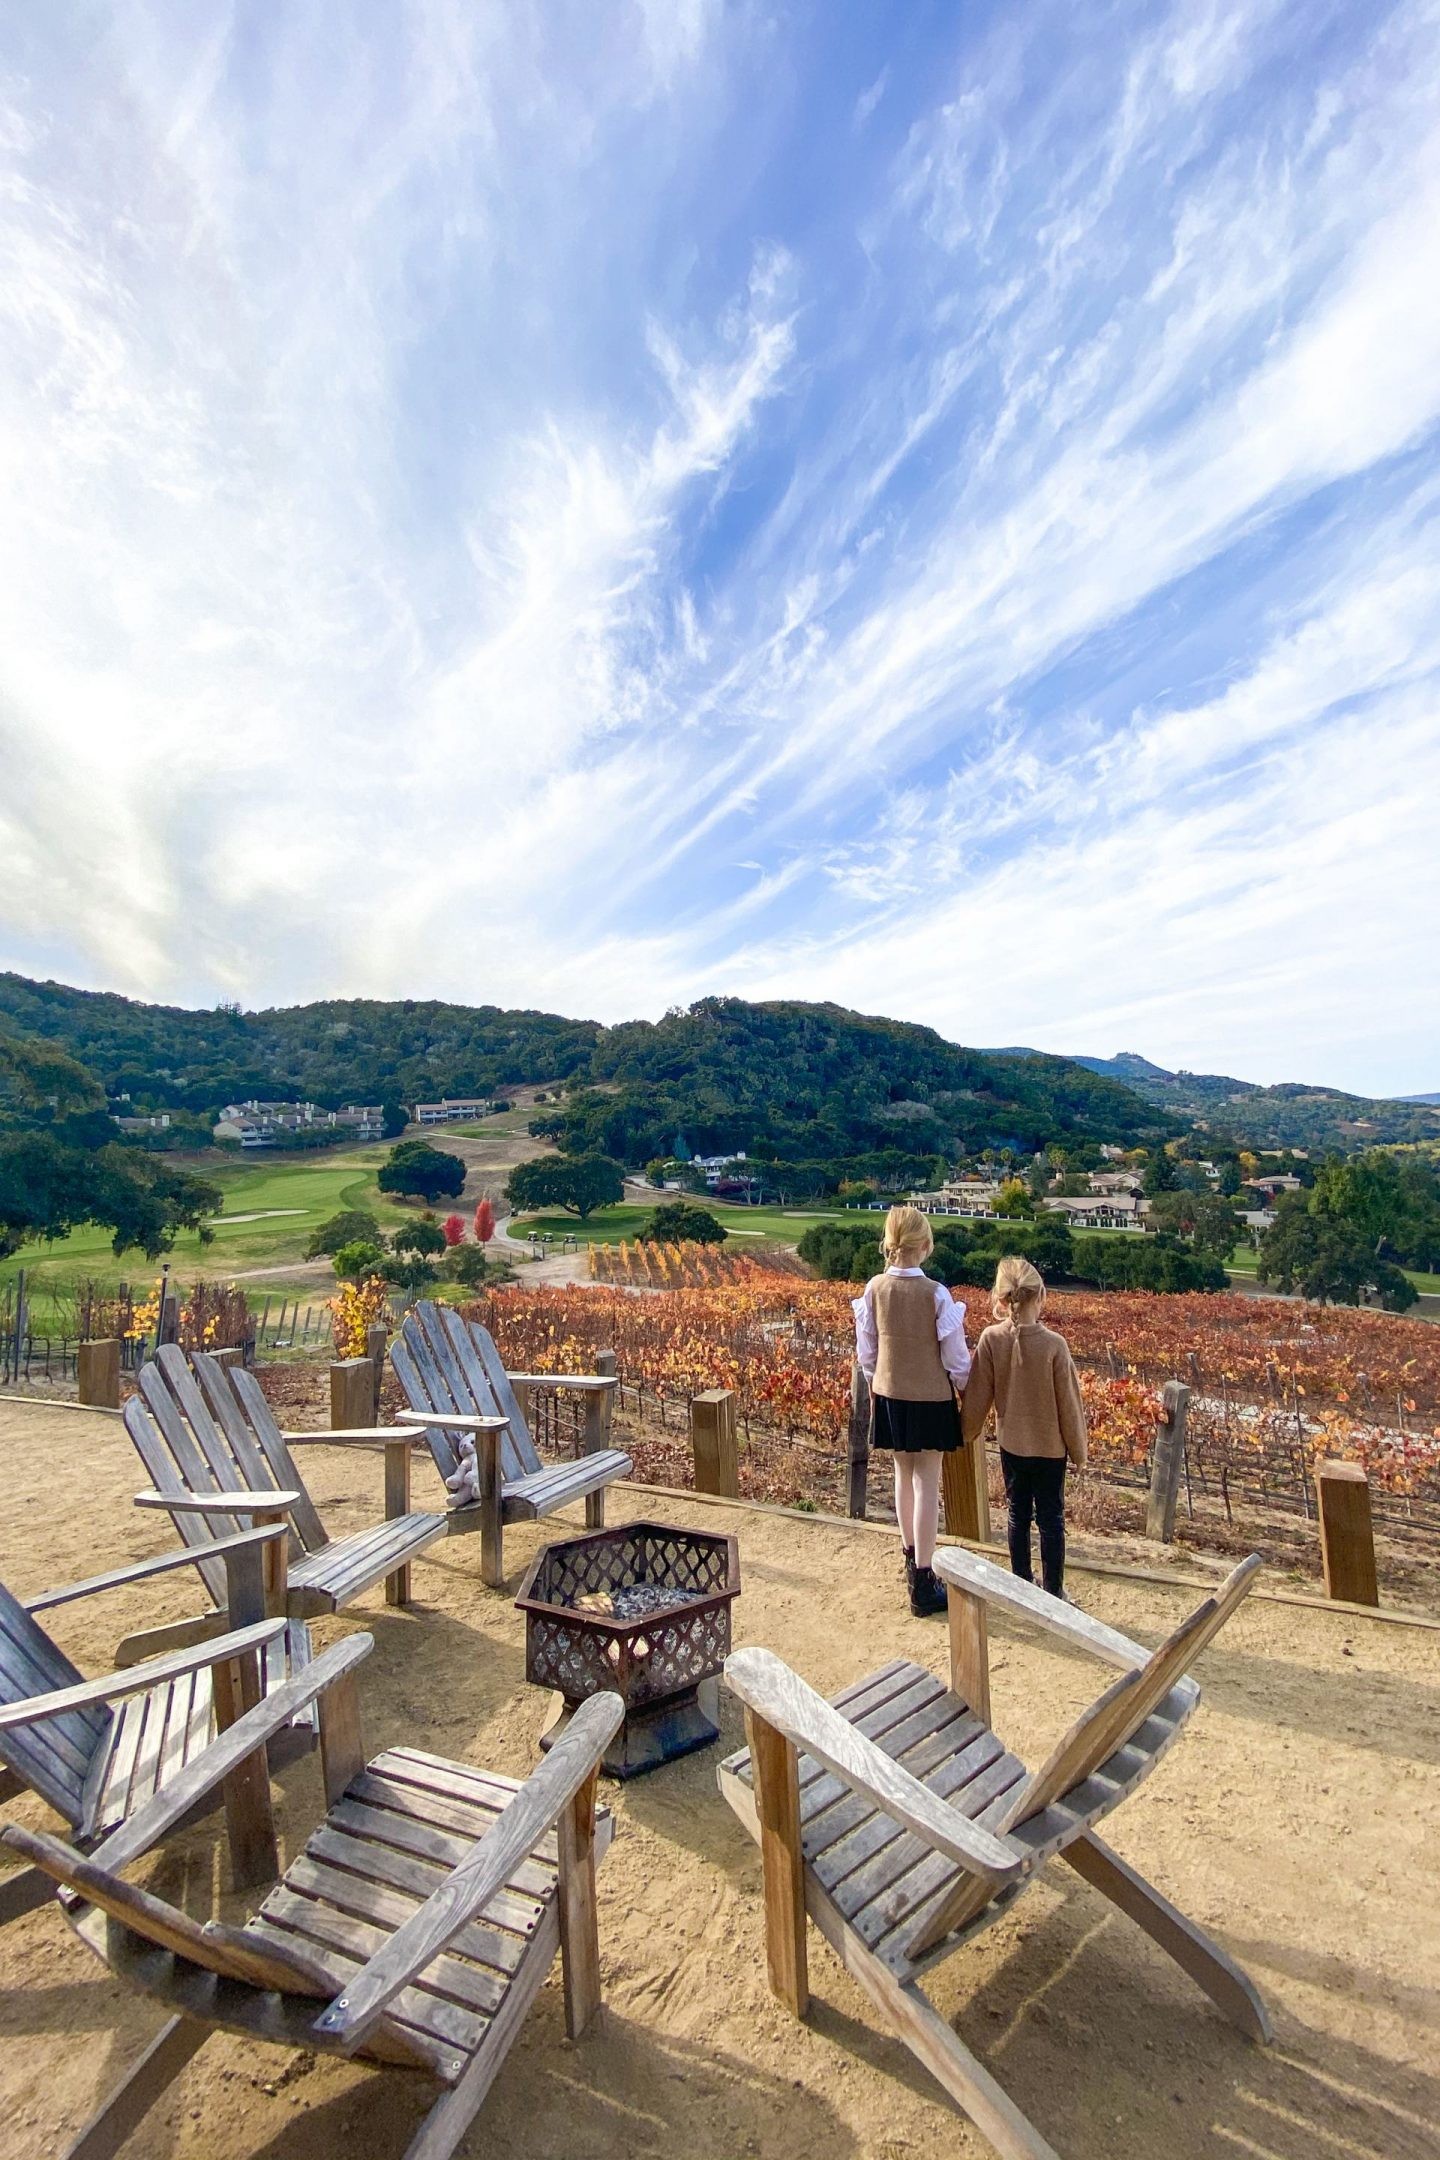 Carmel Valley Ranch family staycation, during Covid and tips on staying safe while traveling in 2020. By San Francisco fashion blogger Lombard & Fifth.